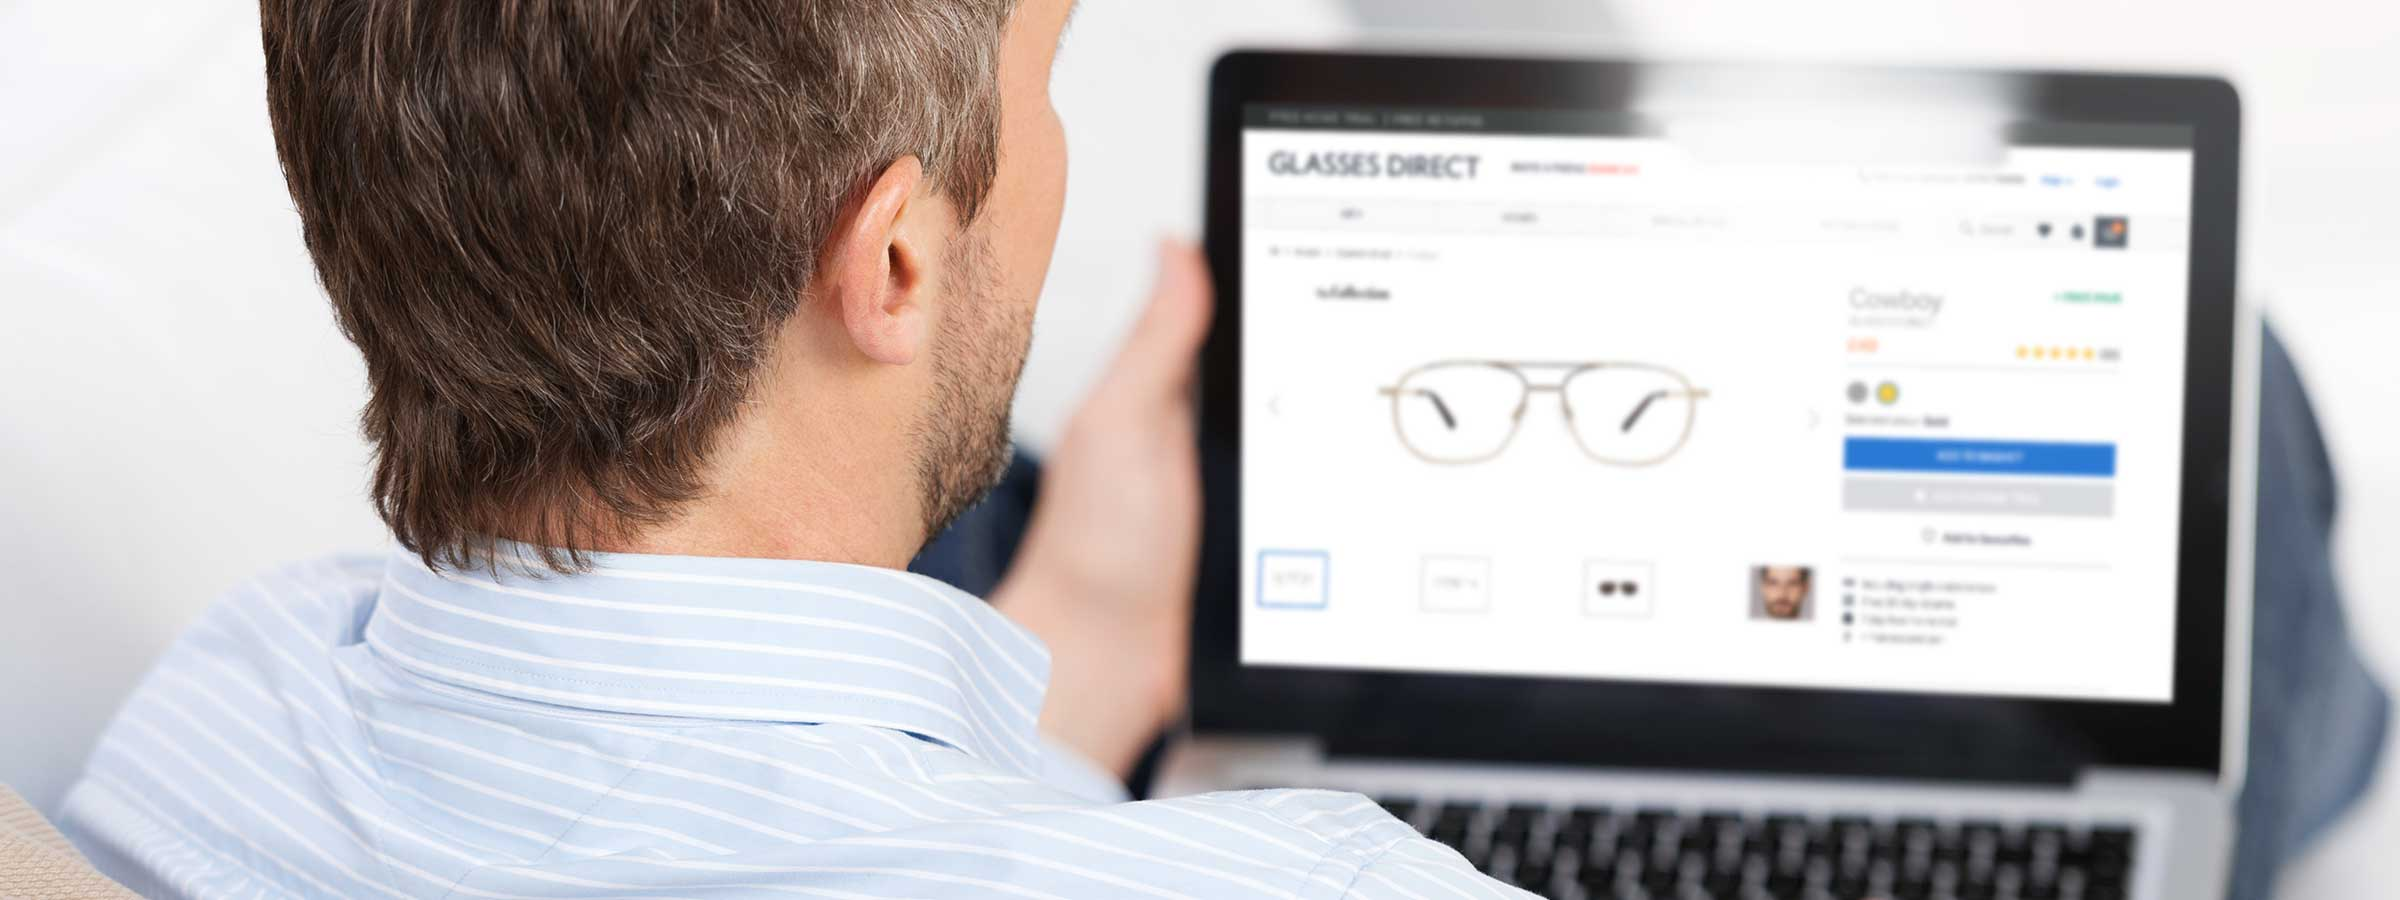 Man looking at the Glasses Direct website on a laptop